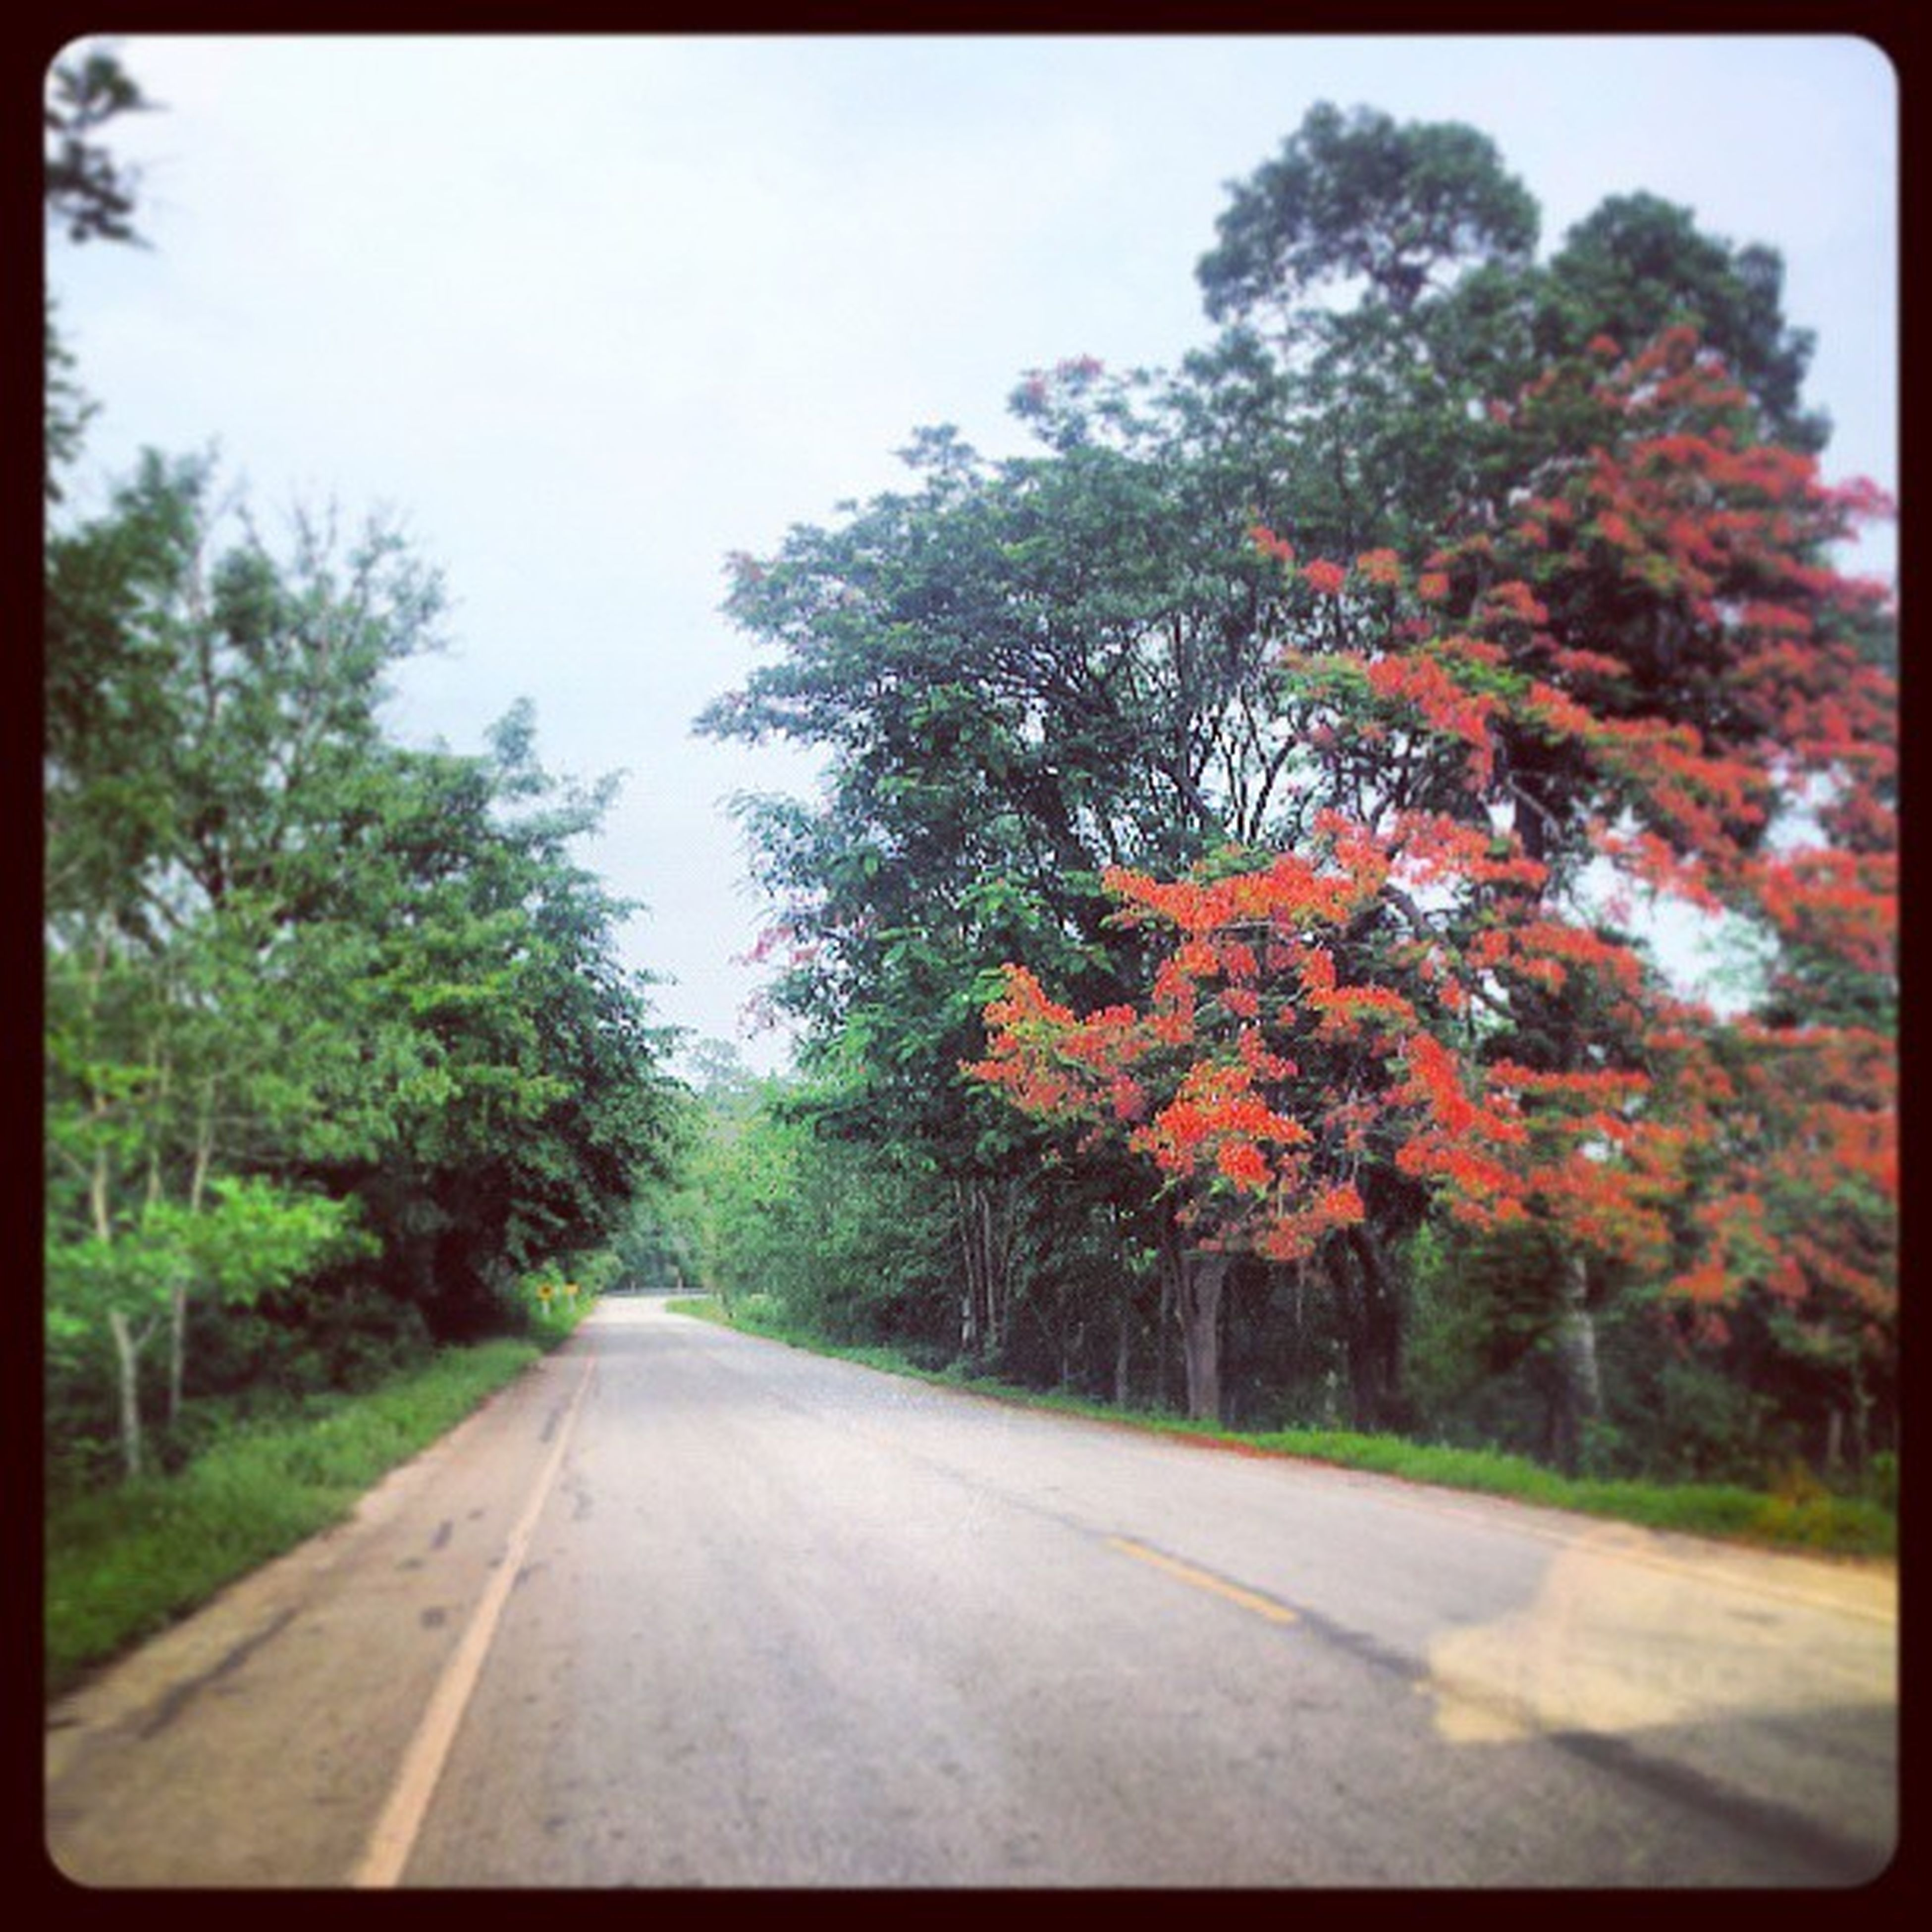 tree, transportation, transfer print, the way forward, road, auto post production filter, diminishing perspective, road marking, growth, vanishing point, country road, nature, sky, day, outdoors, no people, tranquility, beauty in nature, street, autumn